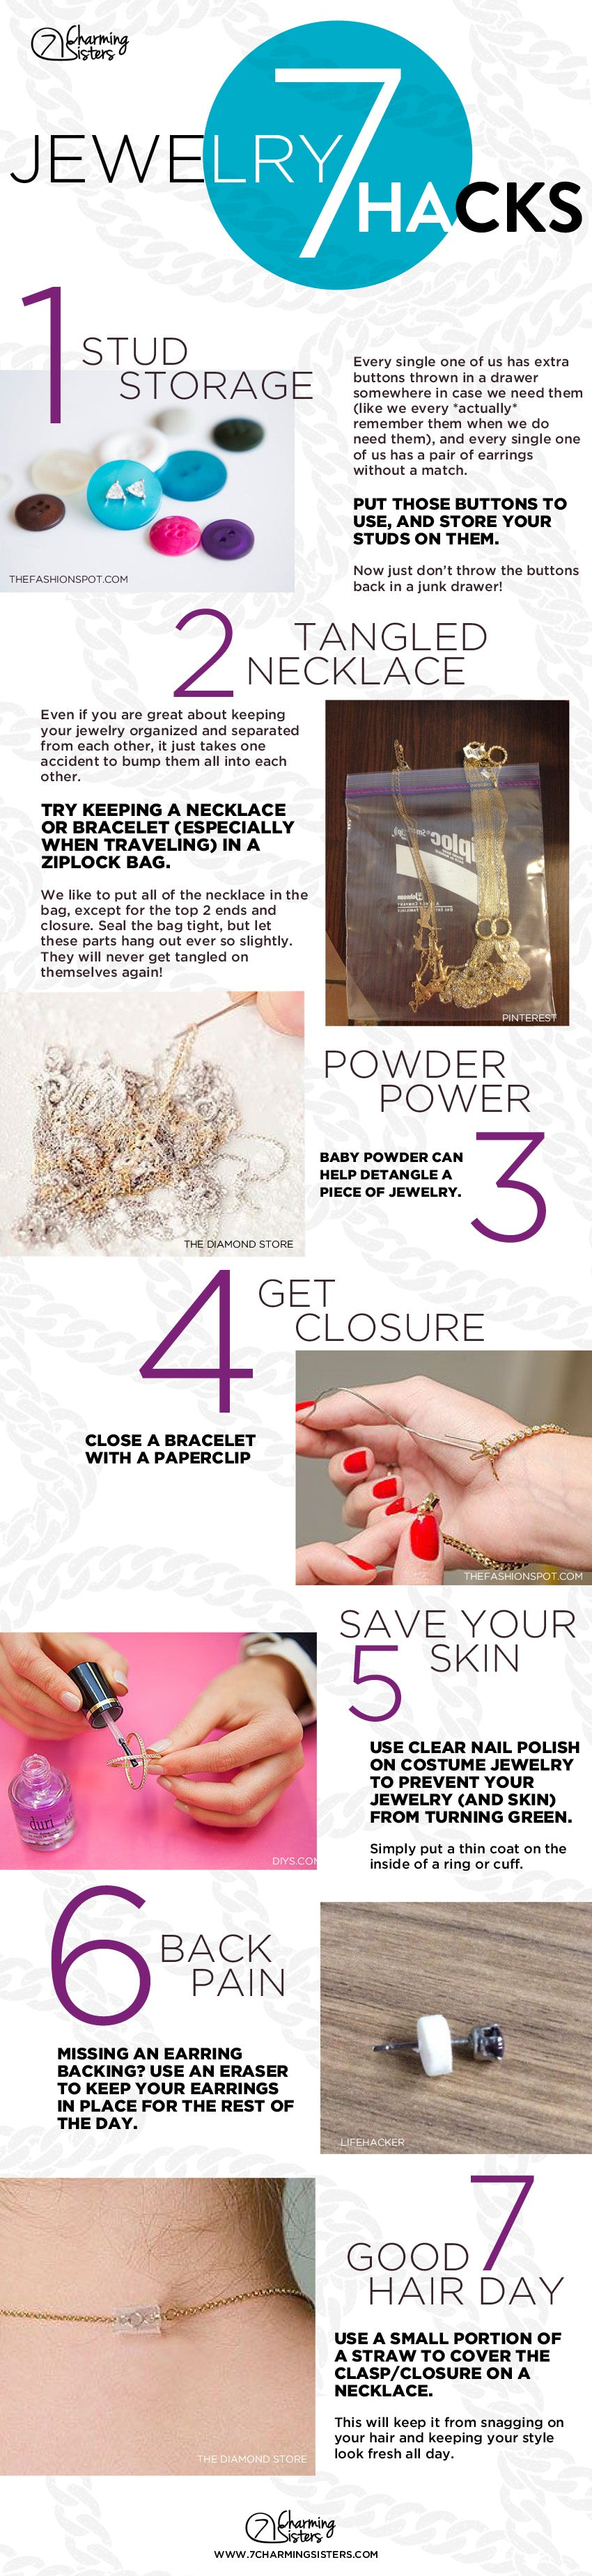 7 Jewelry hacks every girl should know